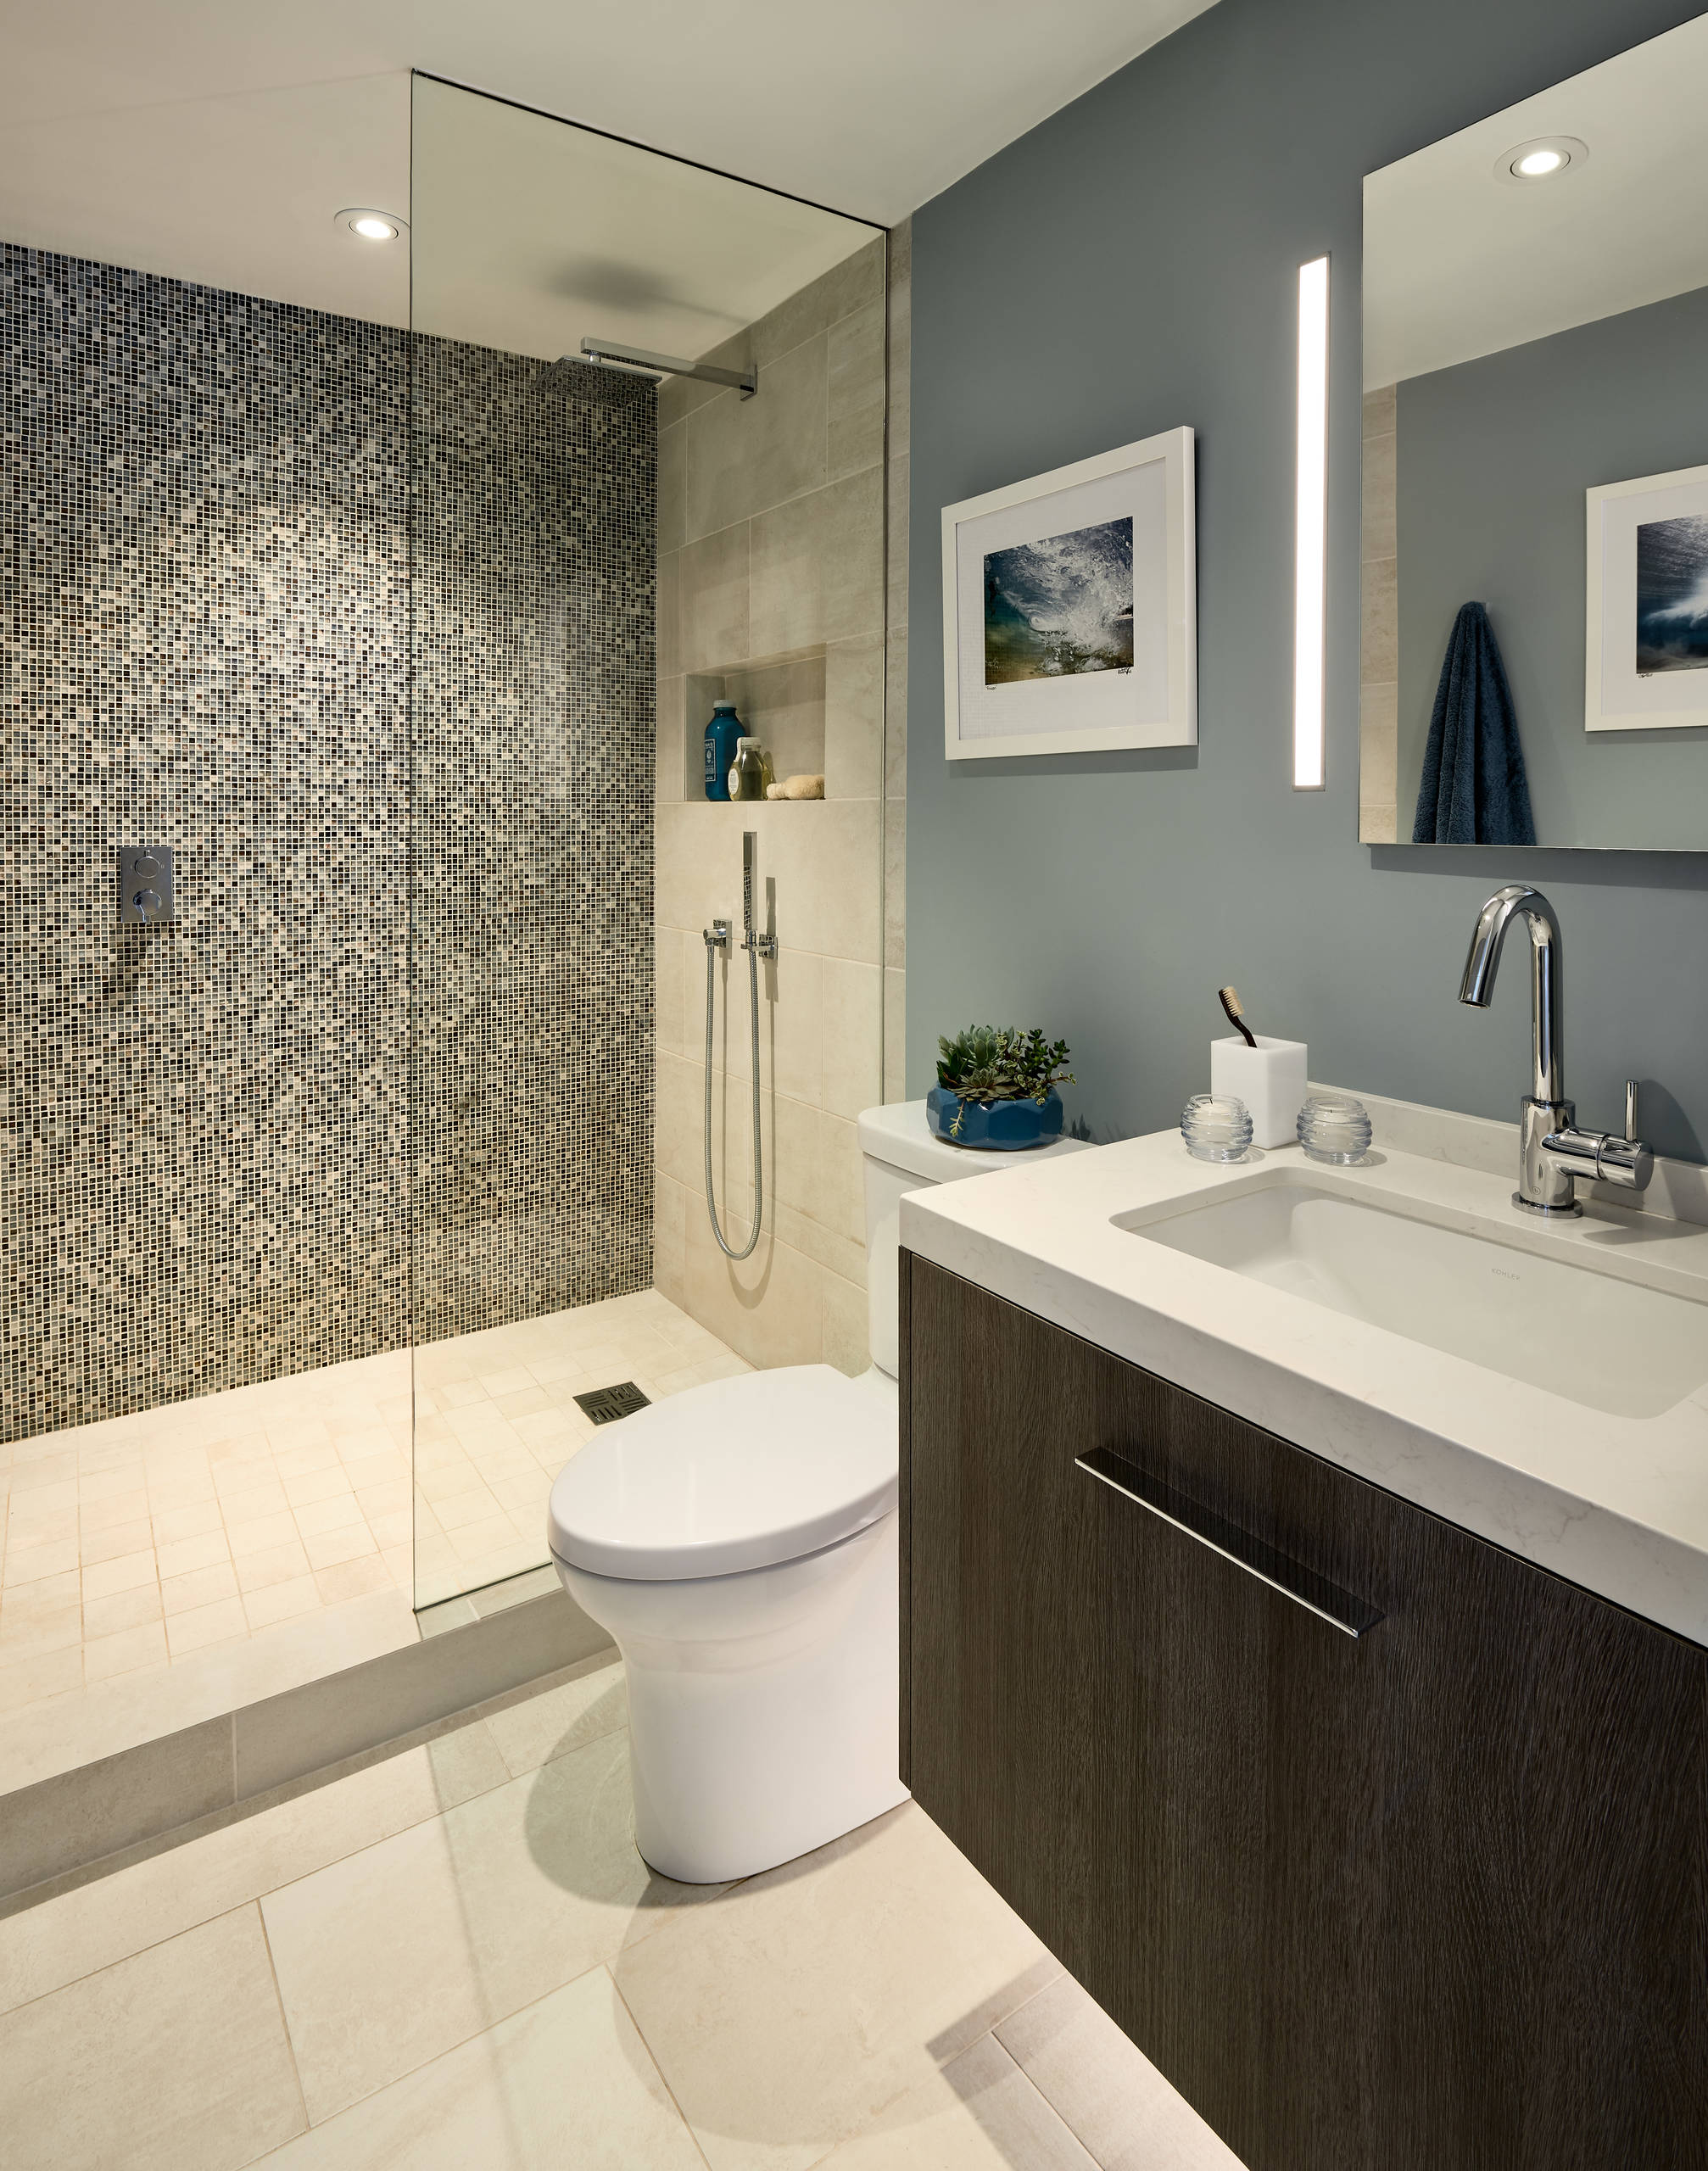 Must See Glass Tile Bathroom Pictures Ideas Before You Renovate 2020 Houzz